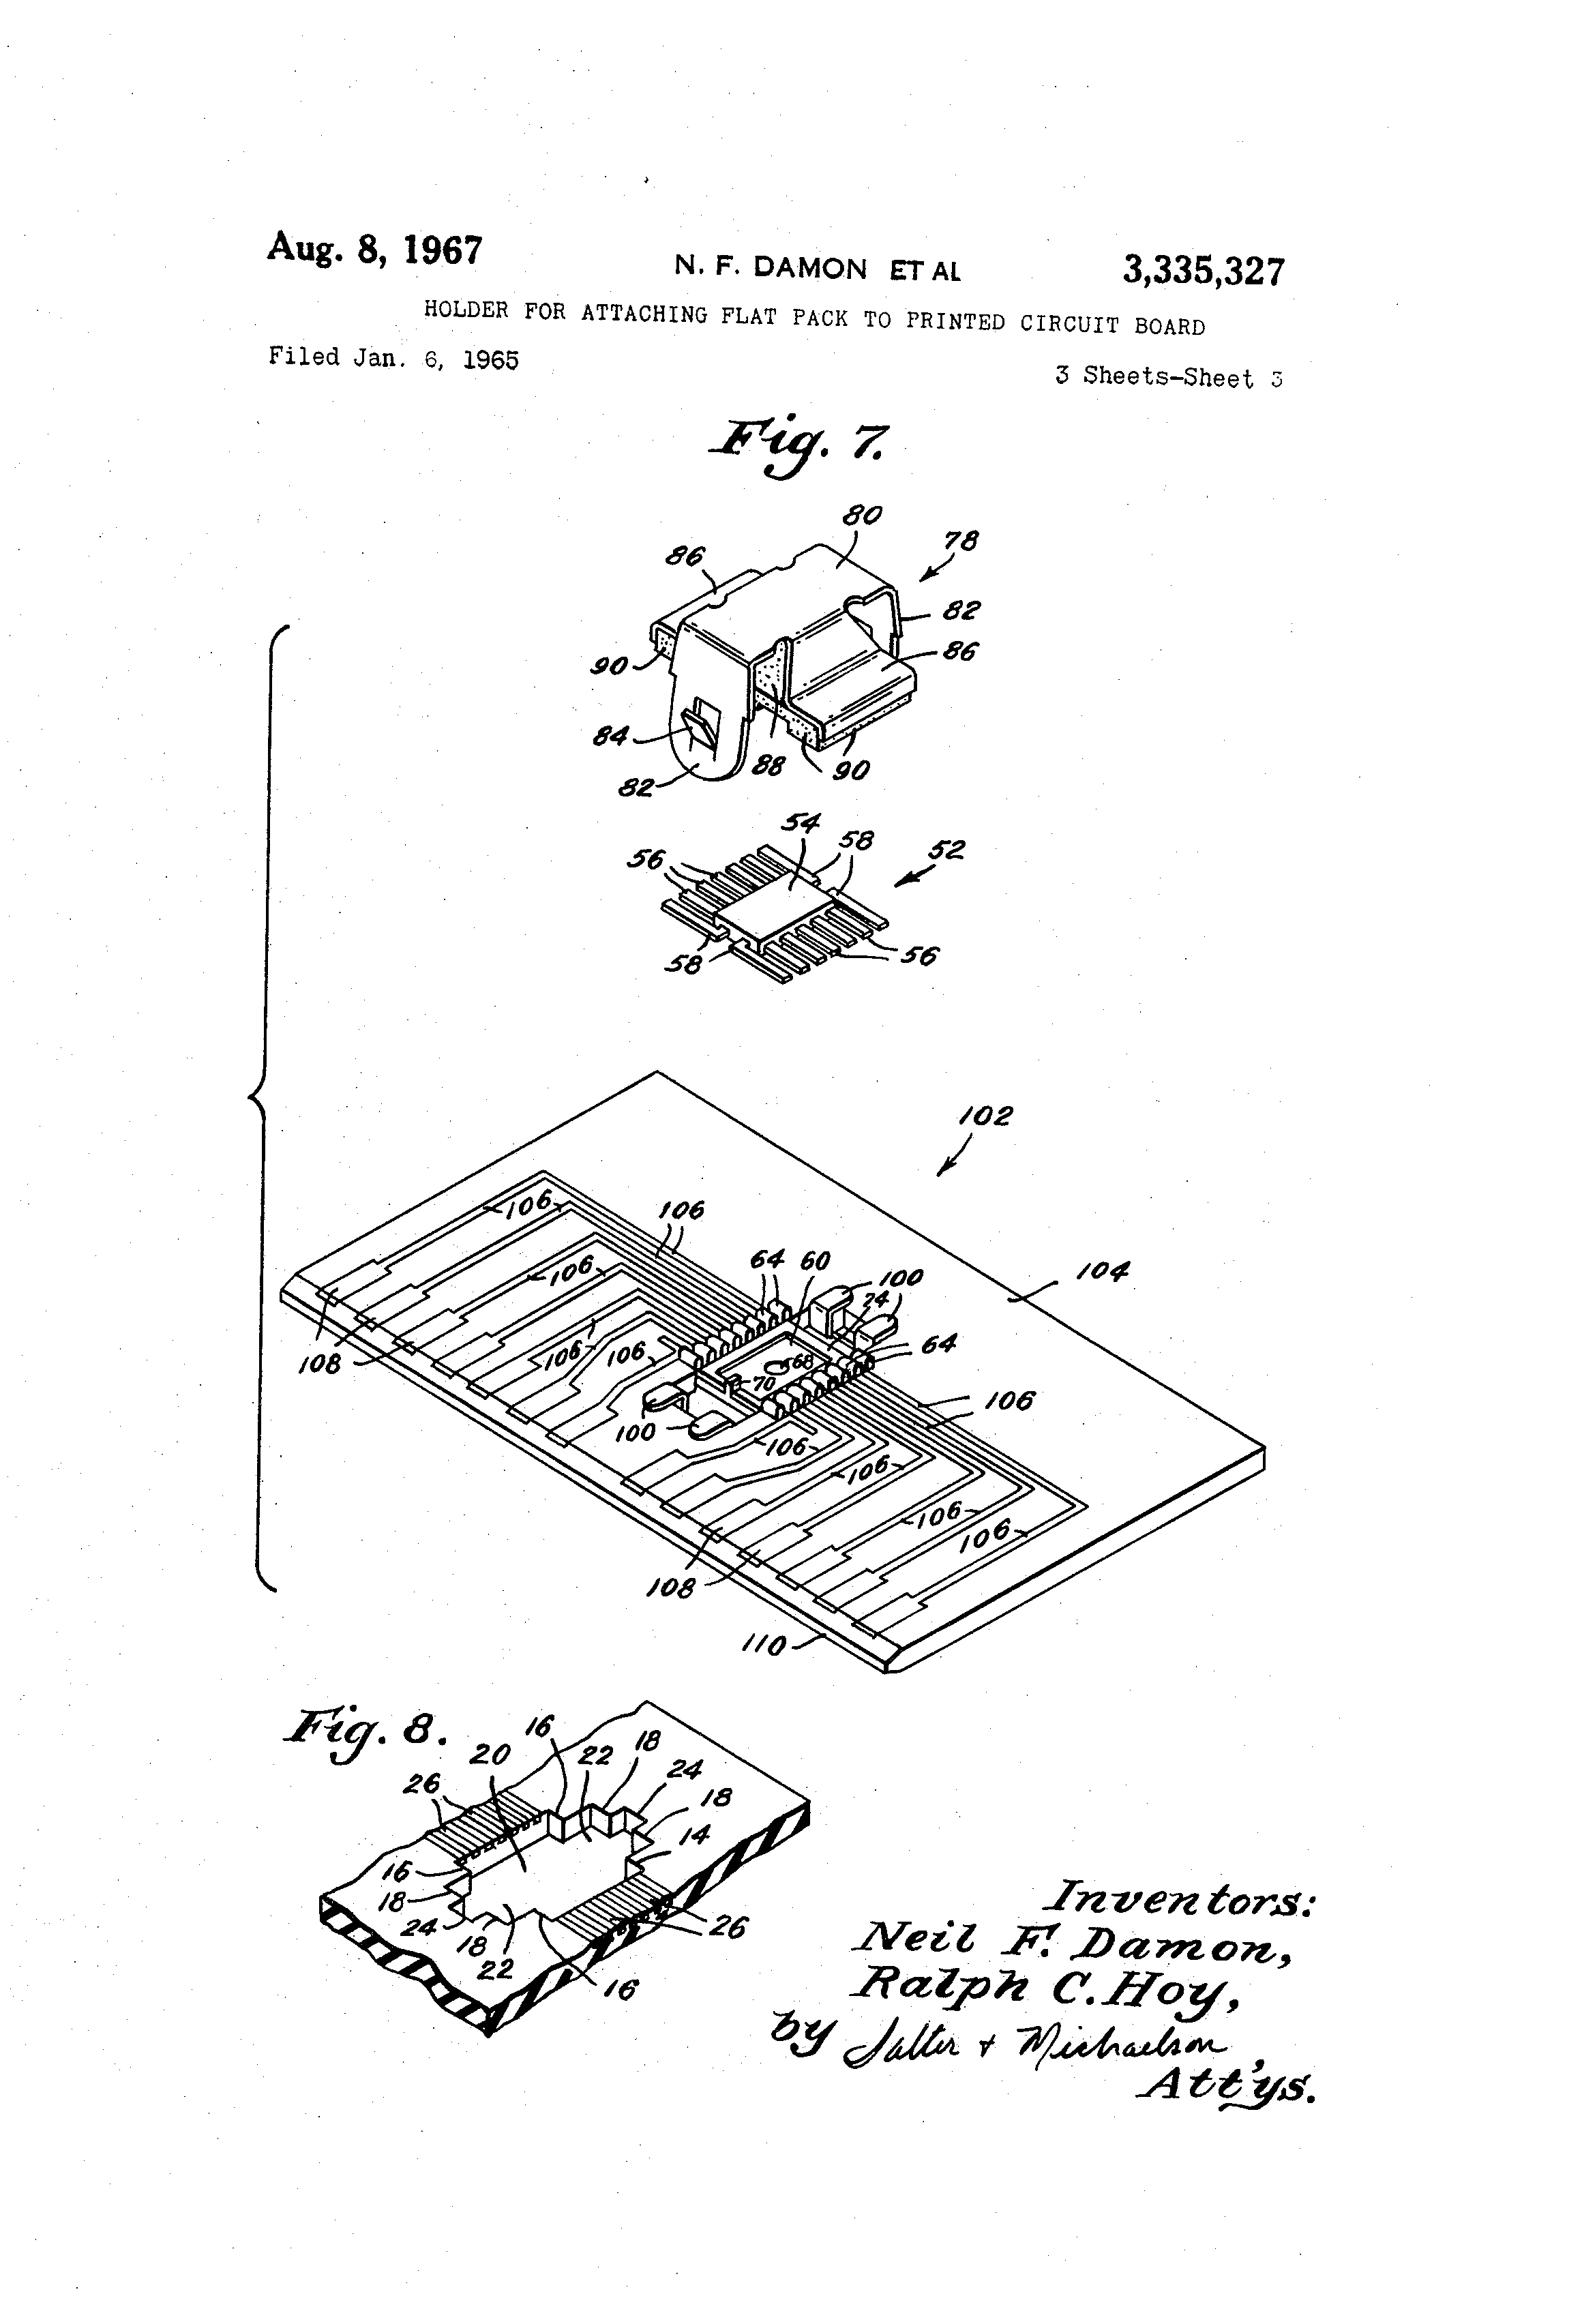 patent us3335327 - holder for attaching flat pack to printed circuit board